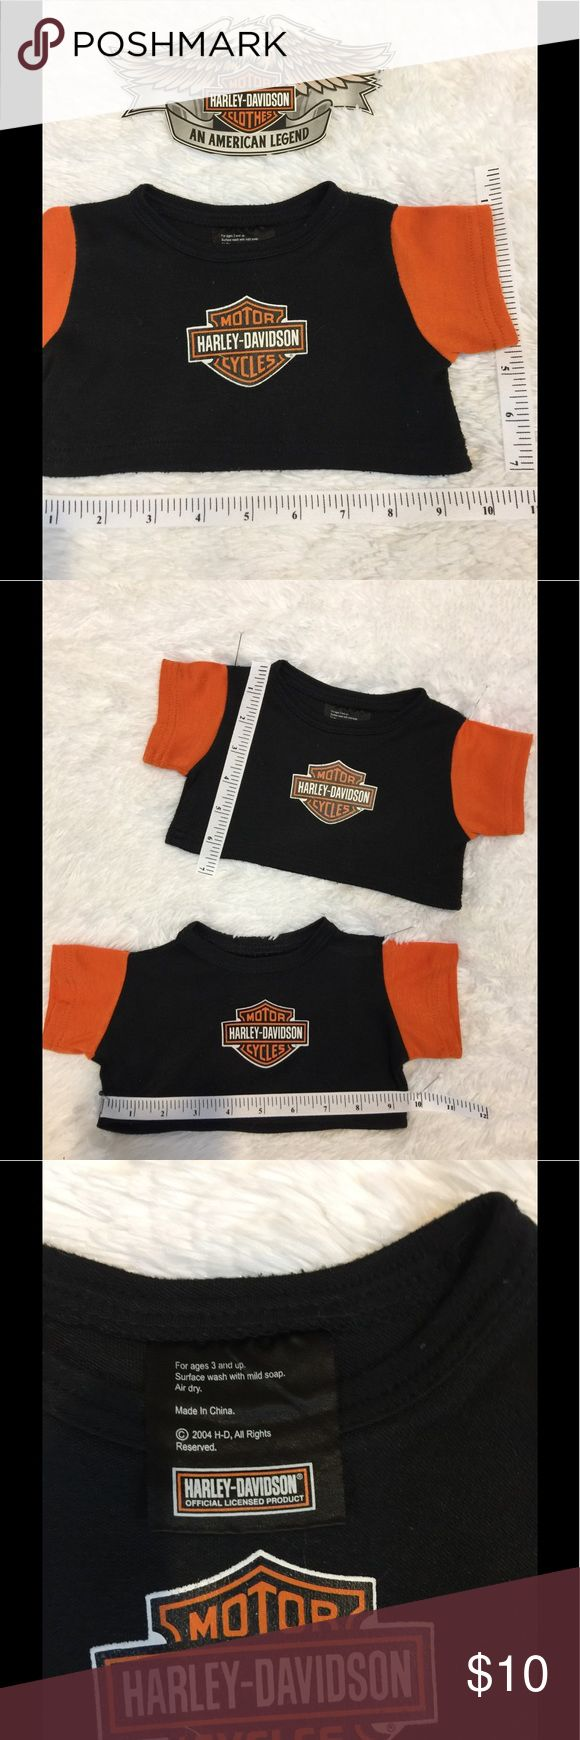 Harley Davidson Pet Tee So adorable, I have two for sale Harley Davidson pet shirts. ( even though I don't have a dog)  Price is for one tag me if you want both. One shirt $ 10 both $ 17 Harley-Davidson Other